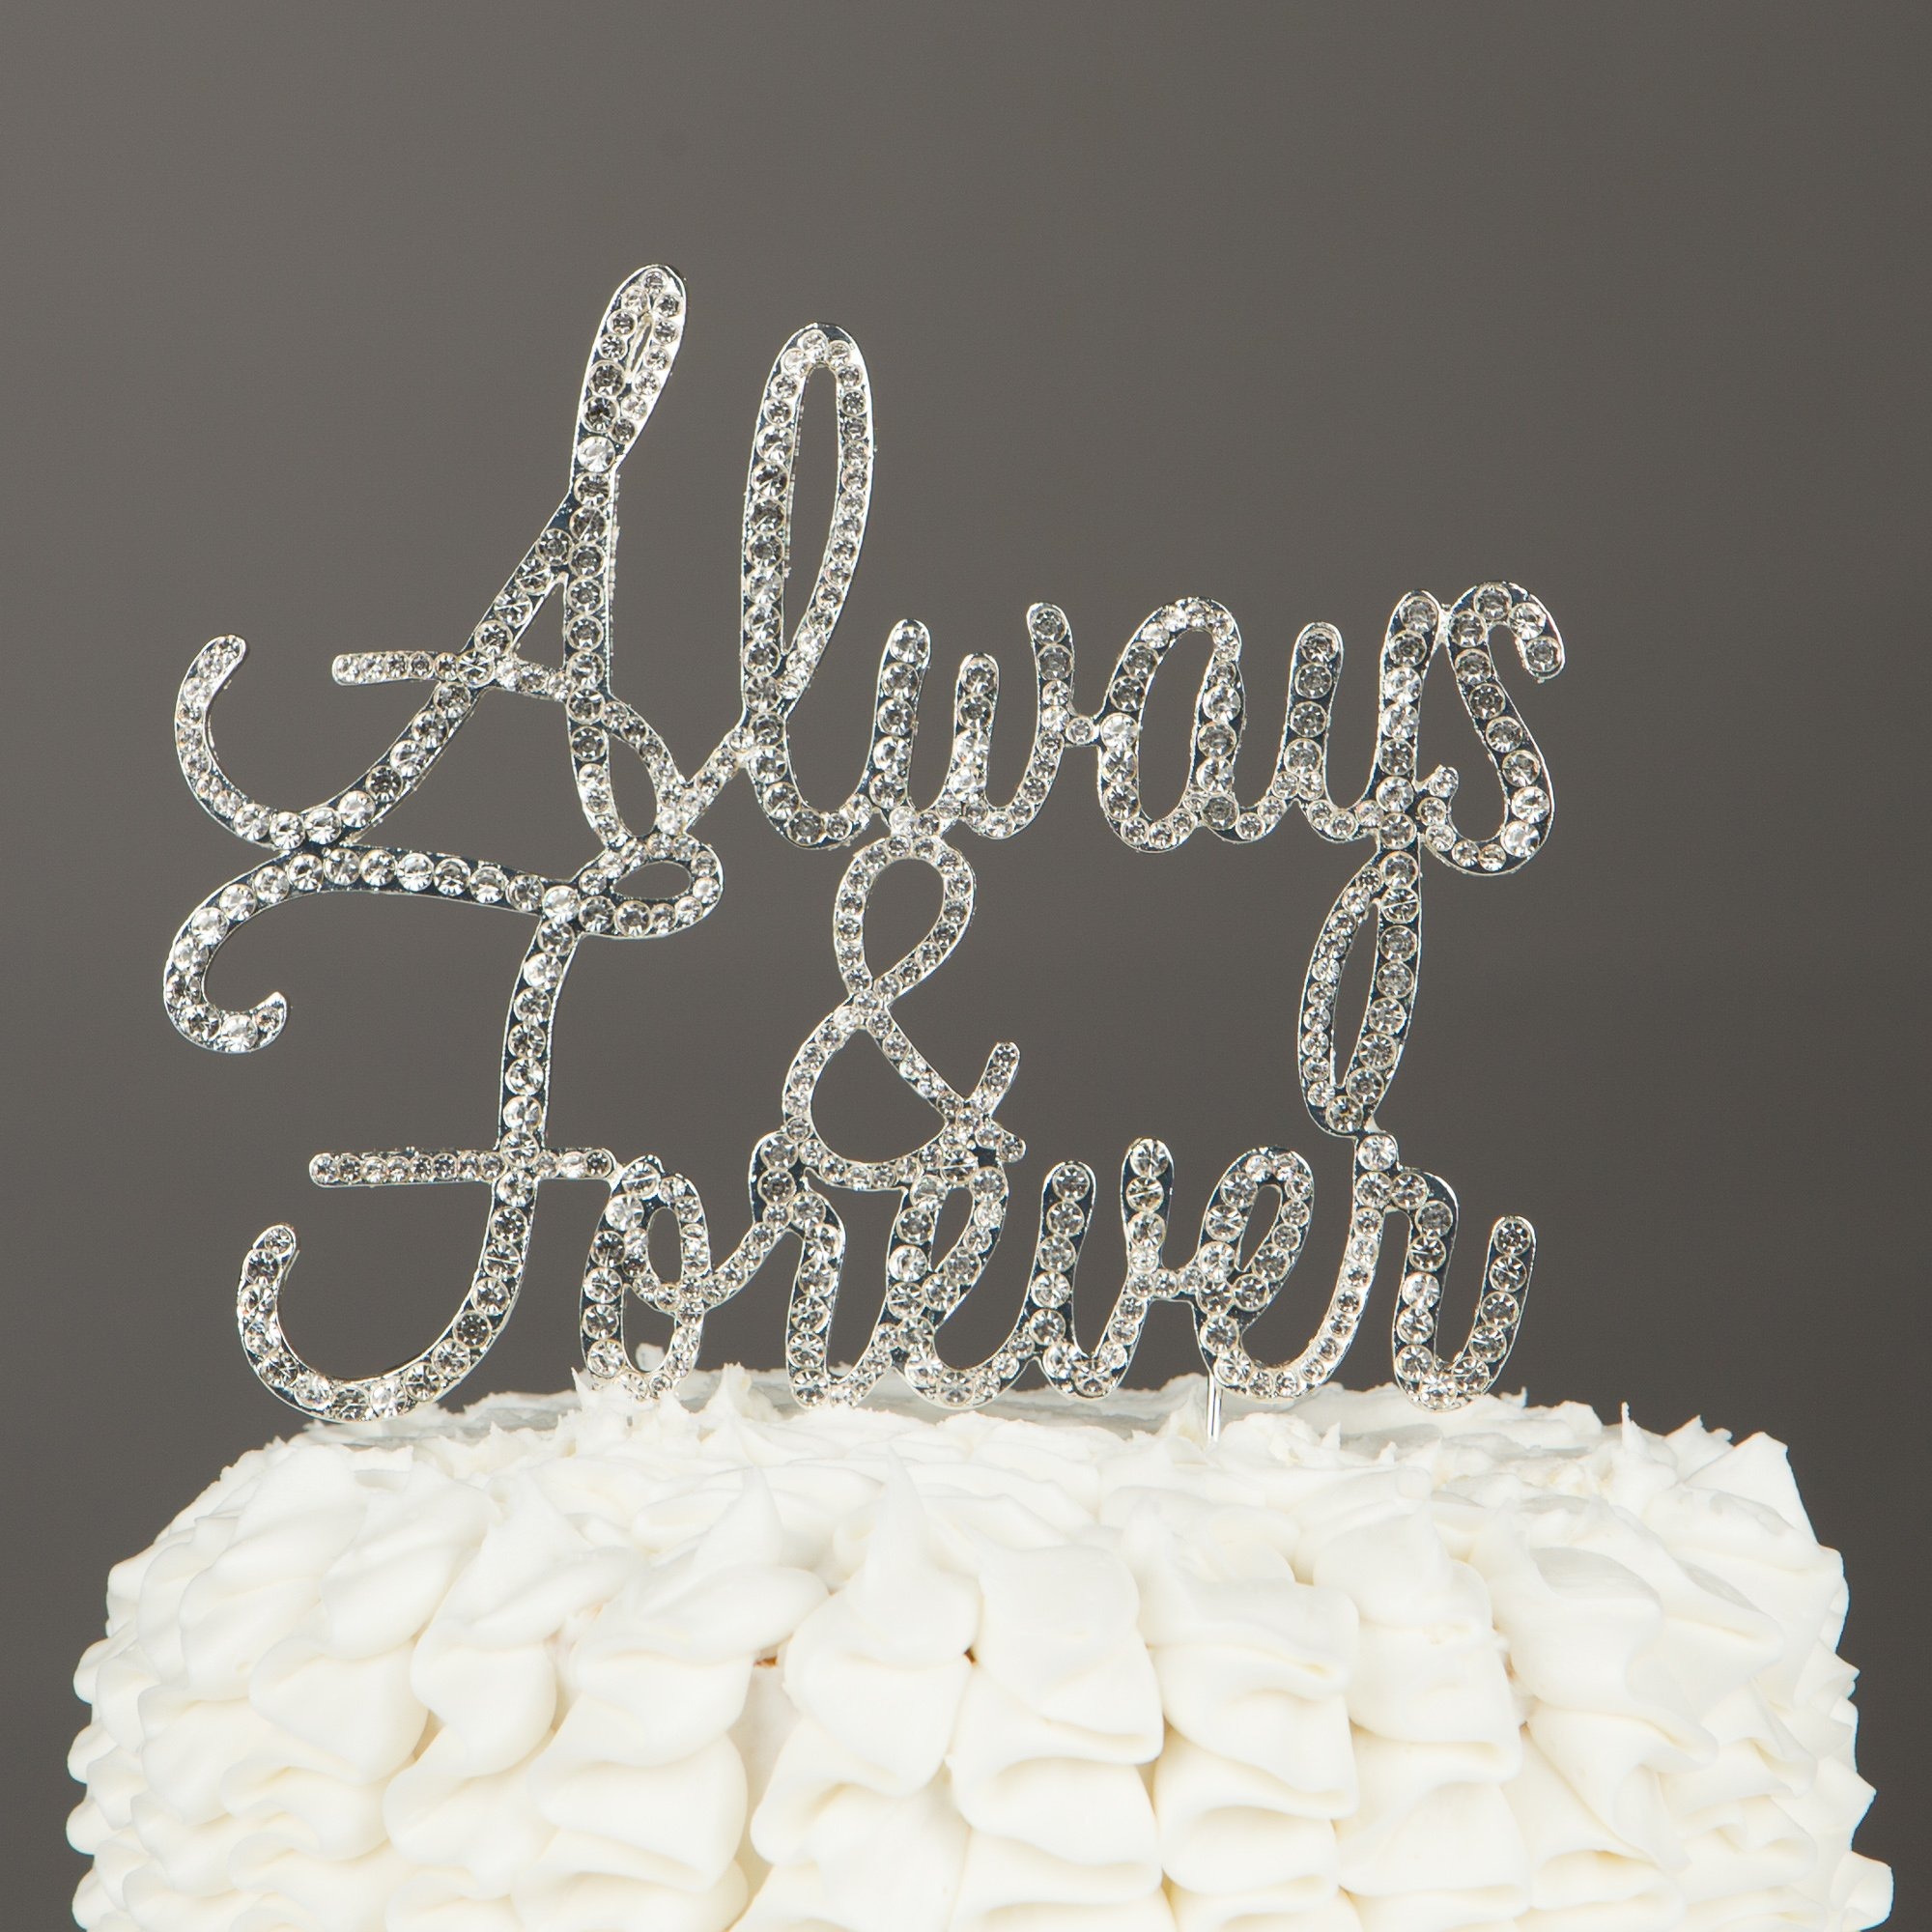 Ella Celebration Always and Forever Wedding Cake Topper, Silver Romantic Rhinestone Decoration (Always & Forever) (Silver) by Ella Celebration (Image #5)